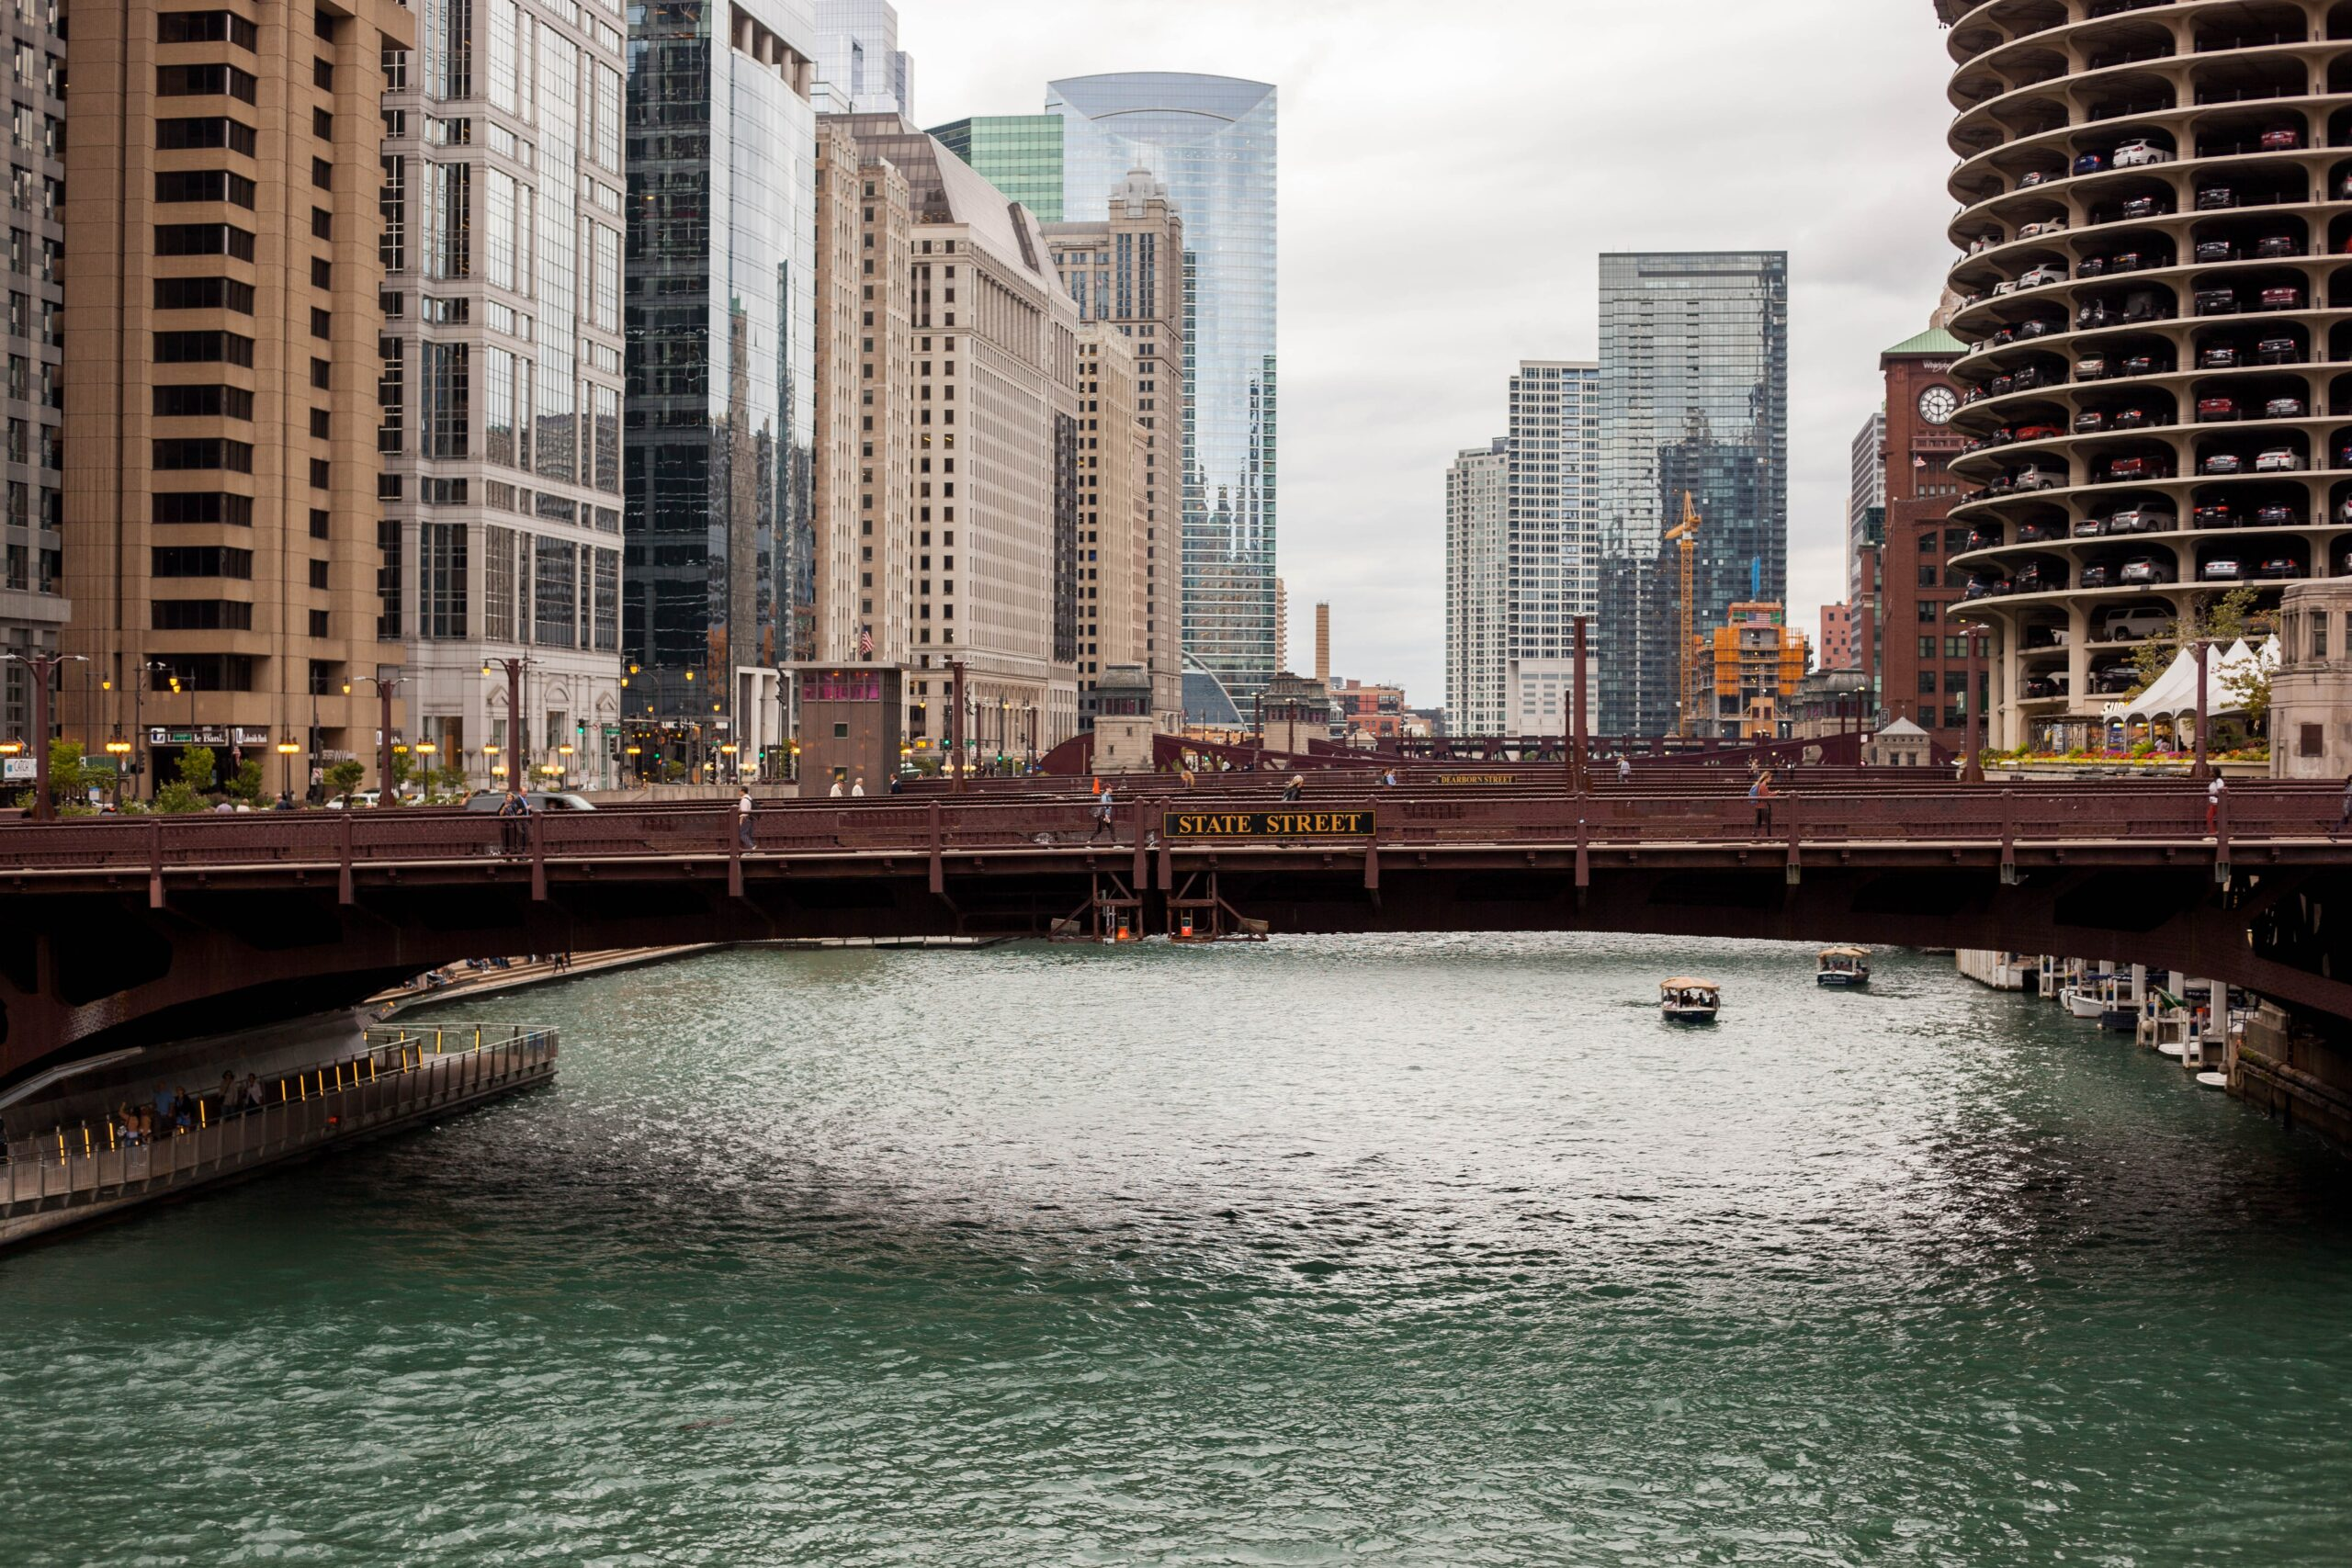 Moving from New York City to downtown Chicago